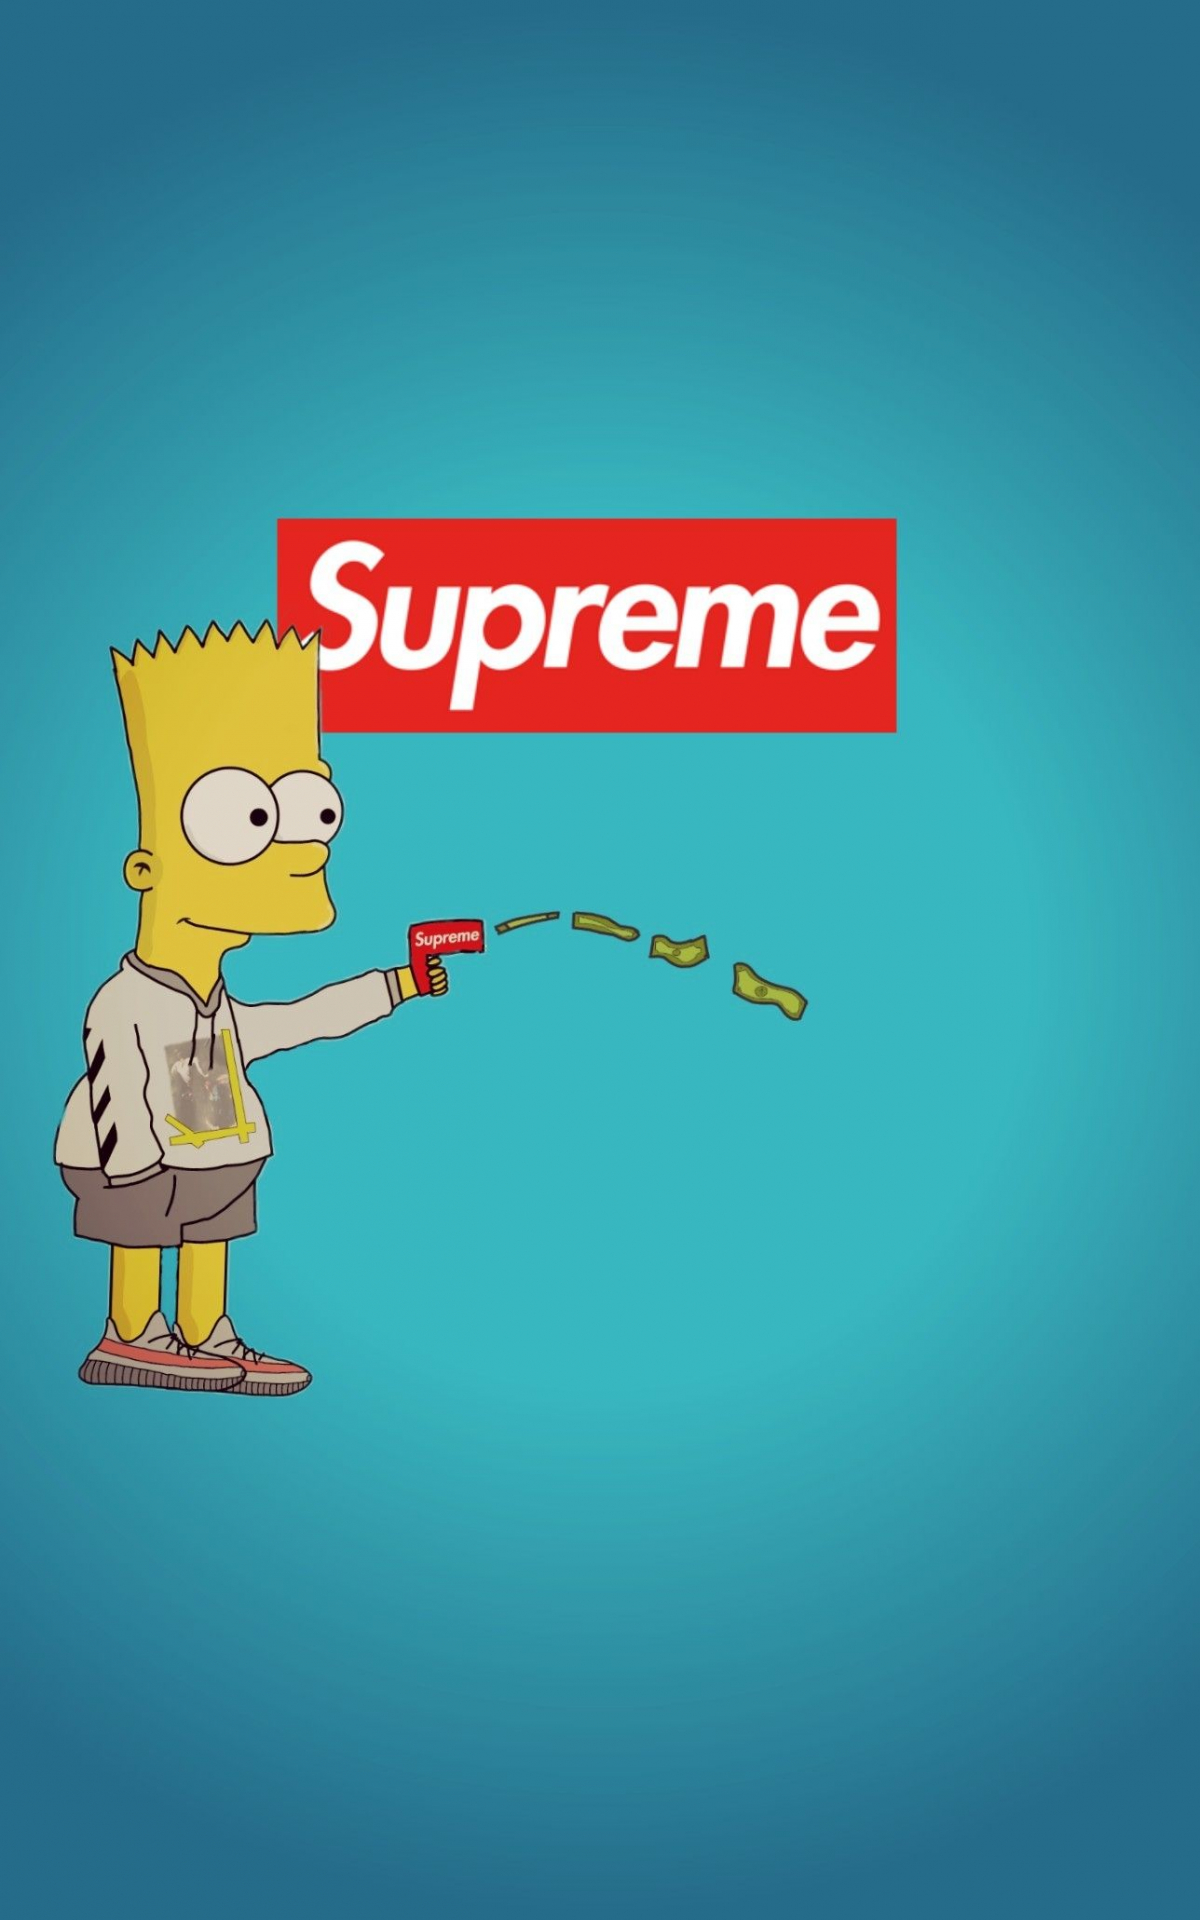 Free Download High Bart Simpson Supreme Wallpapers Top High Bart